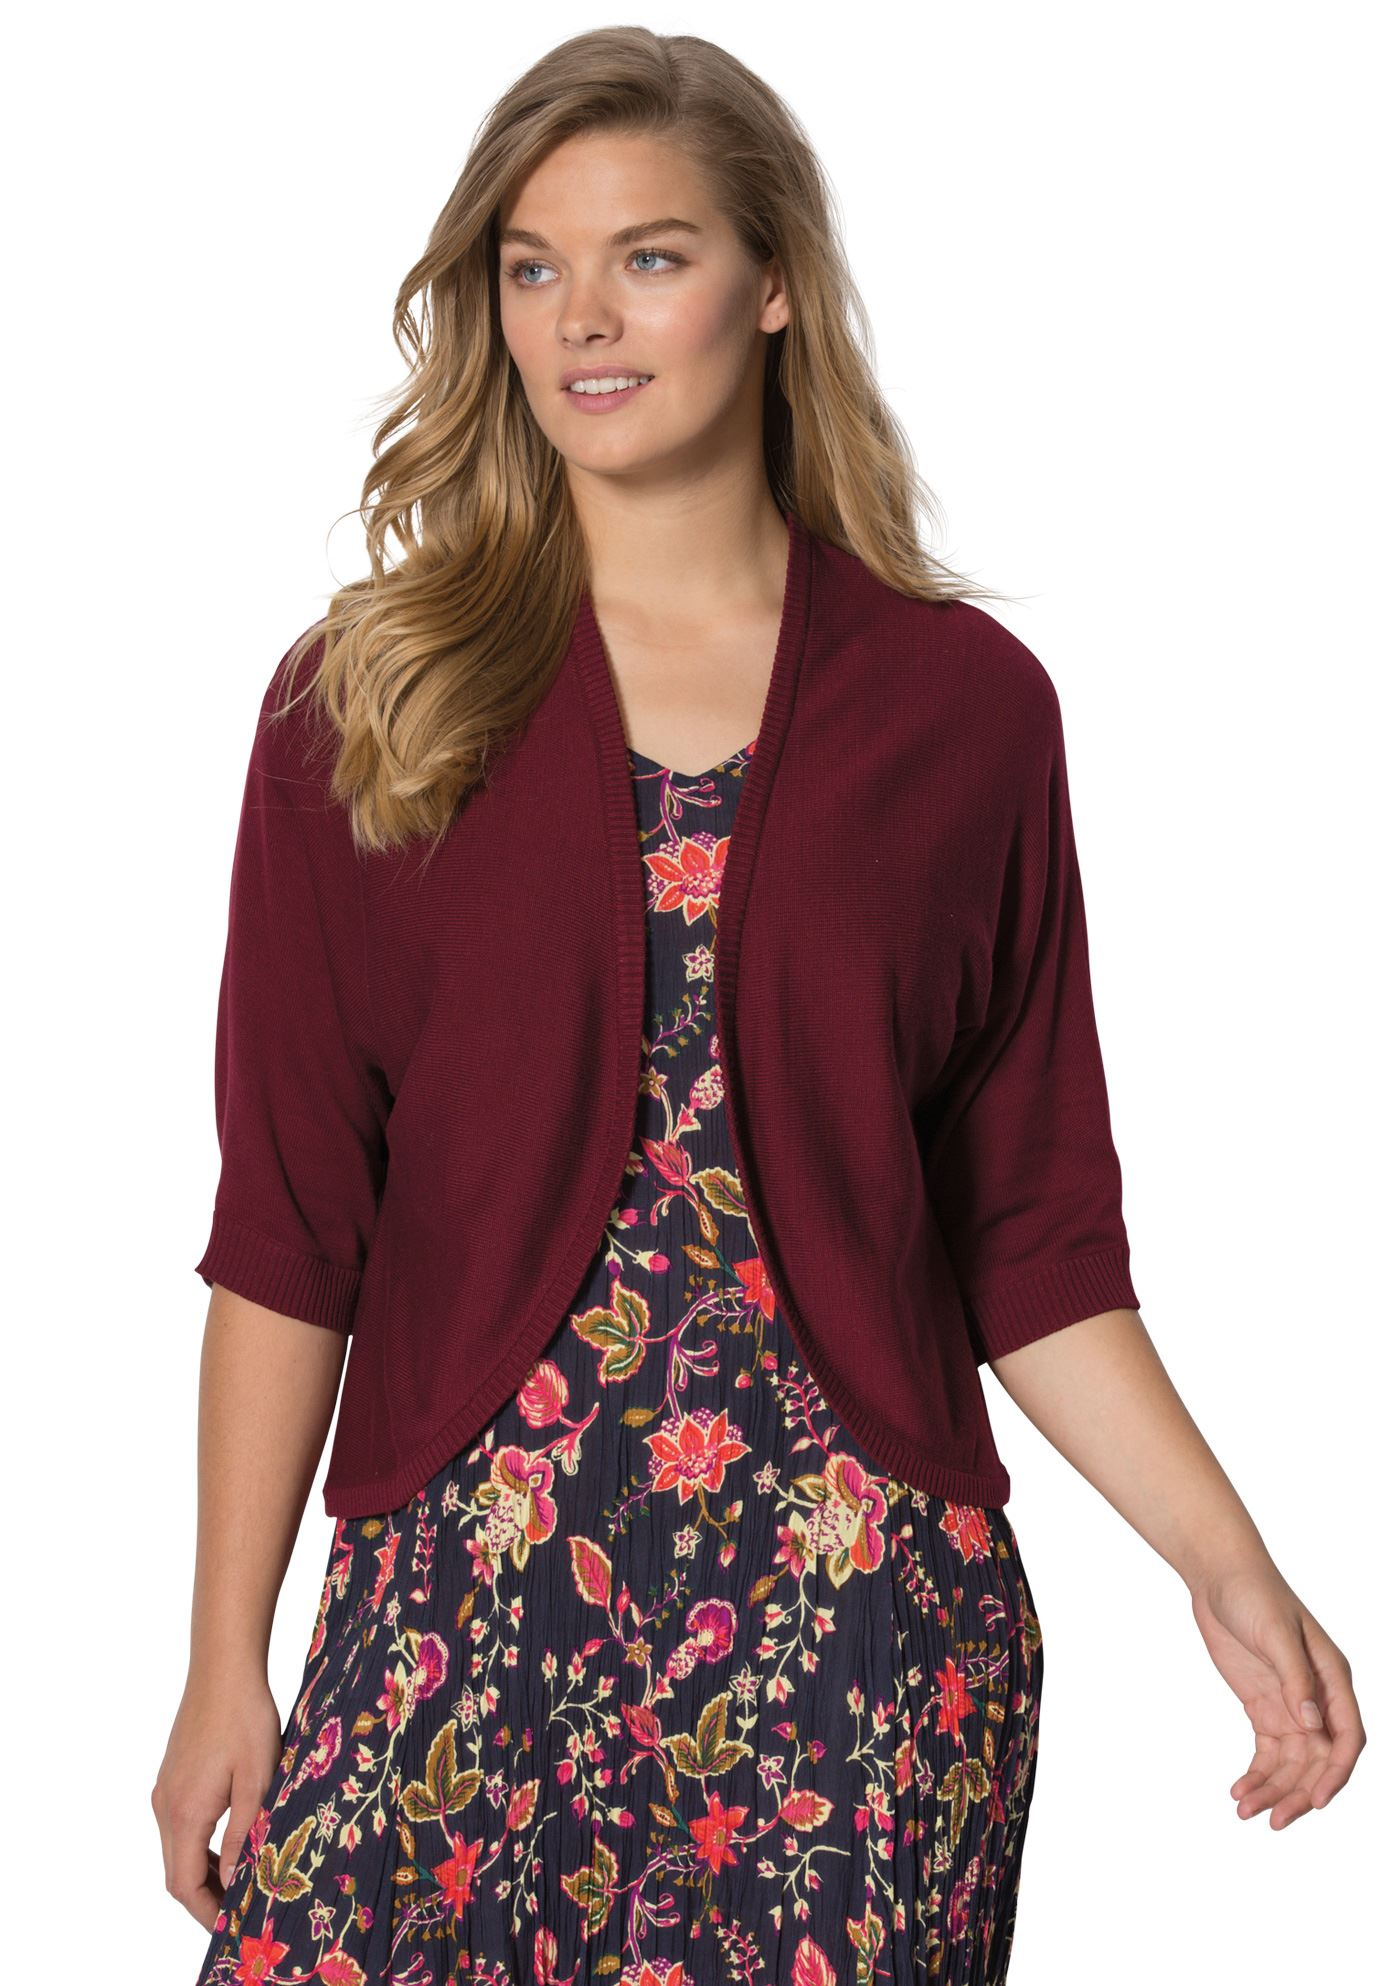 a8b8ee741f9 Rib-trimmed cardigan sweater - Women's Plus Size Clothing | Products ...